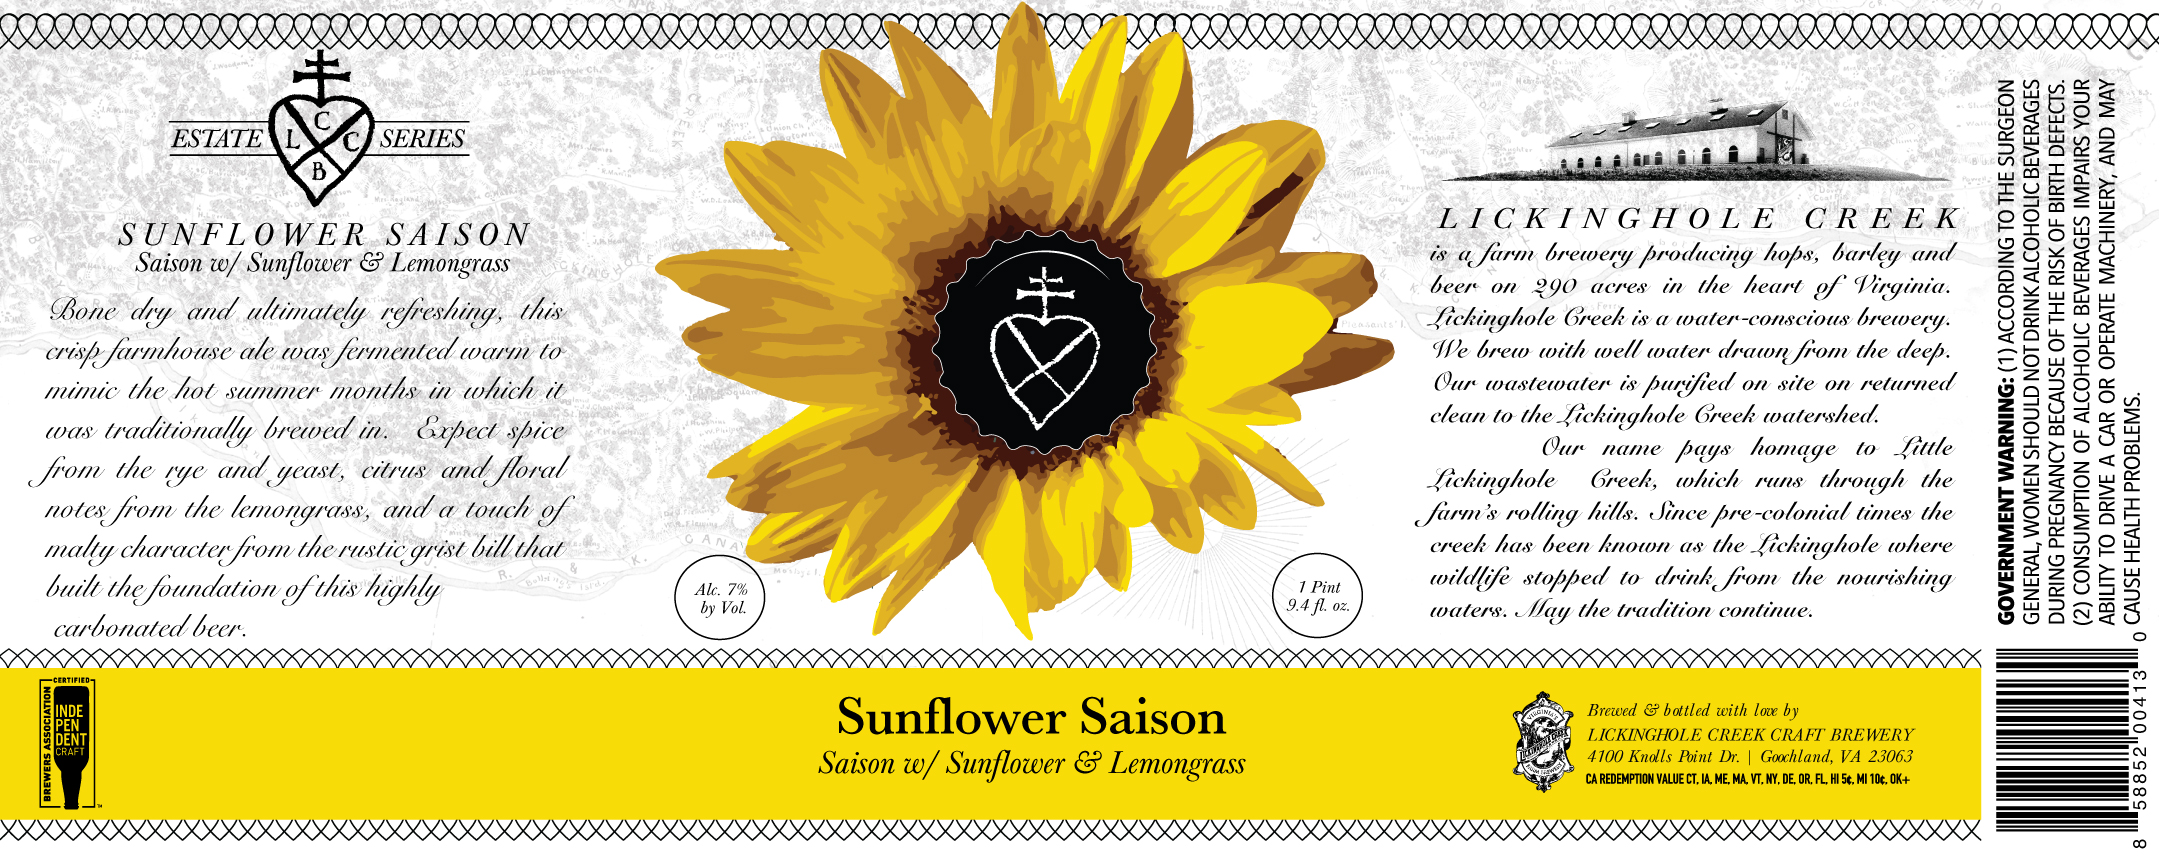 Sunflower Saison   Saison w/ Sunflower & Lemongrass  7% Alc. by Vol.  Bone dry and ultimately refreshing, this crisp farmhouse ale was fermented warm to mimic the hot summer months in which it was traditionally brewed in. Expect spice from the rye and yeast, citrus and floral notes from the lemongrass, and a touch of malty character from the rustic grist bill that built the foundation of this highly carbonated beer.